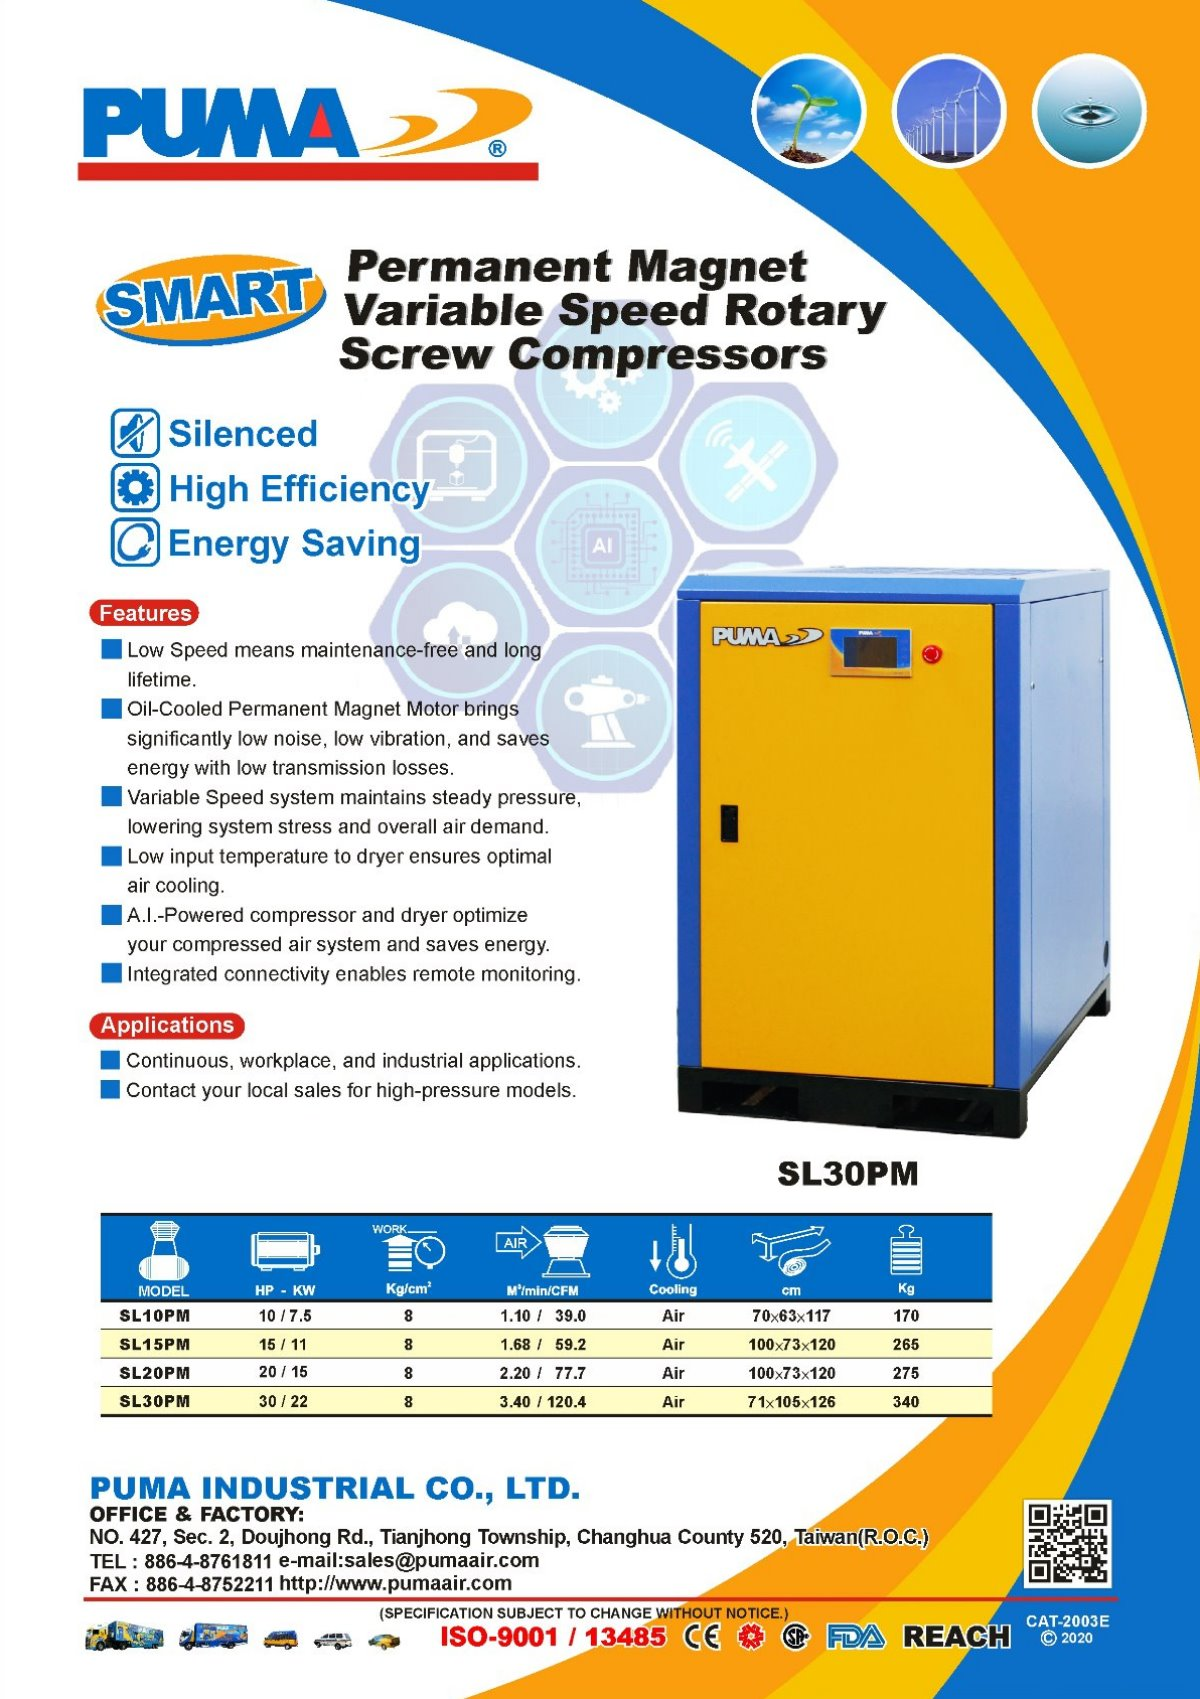 PUMA Smart Permanent Magnet Variable Speed Rotary Screw Compressors